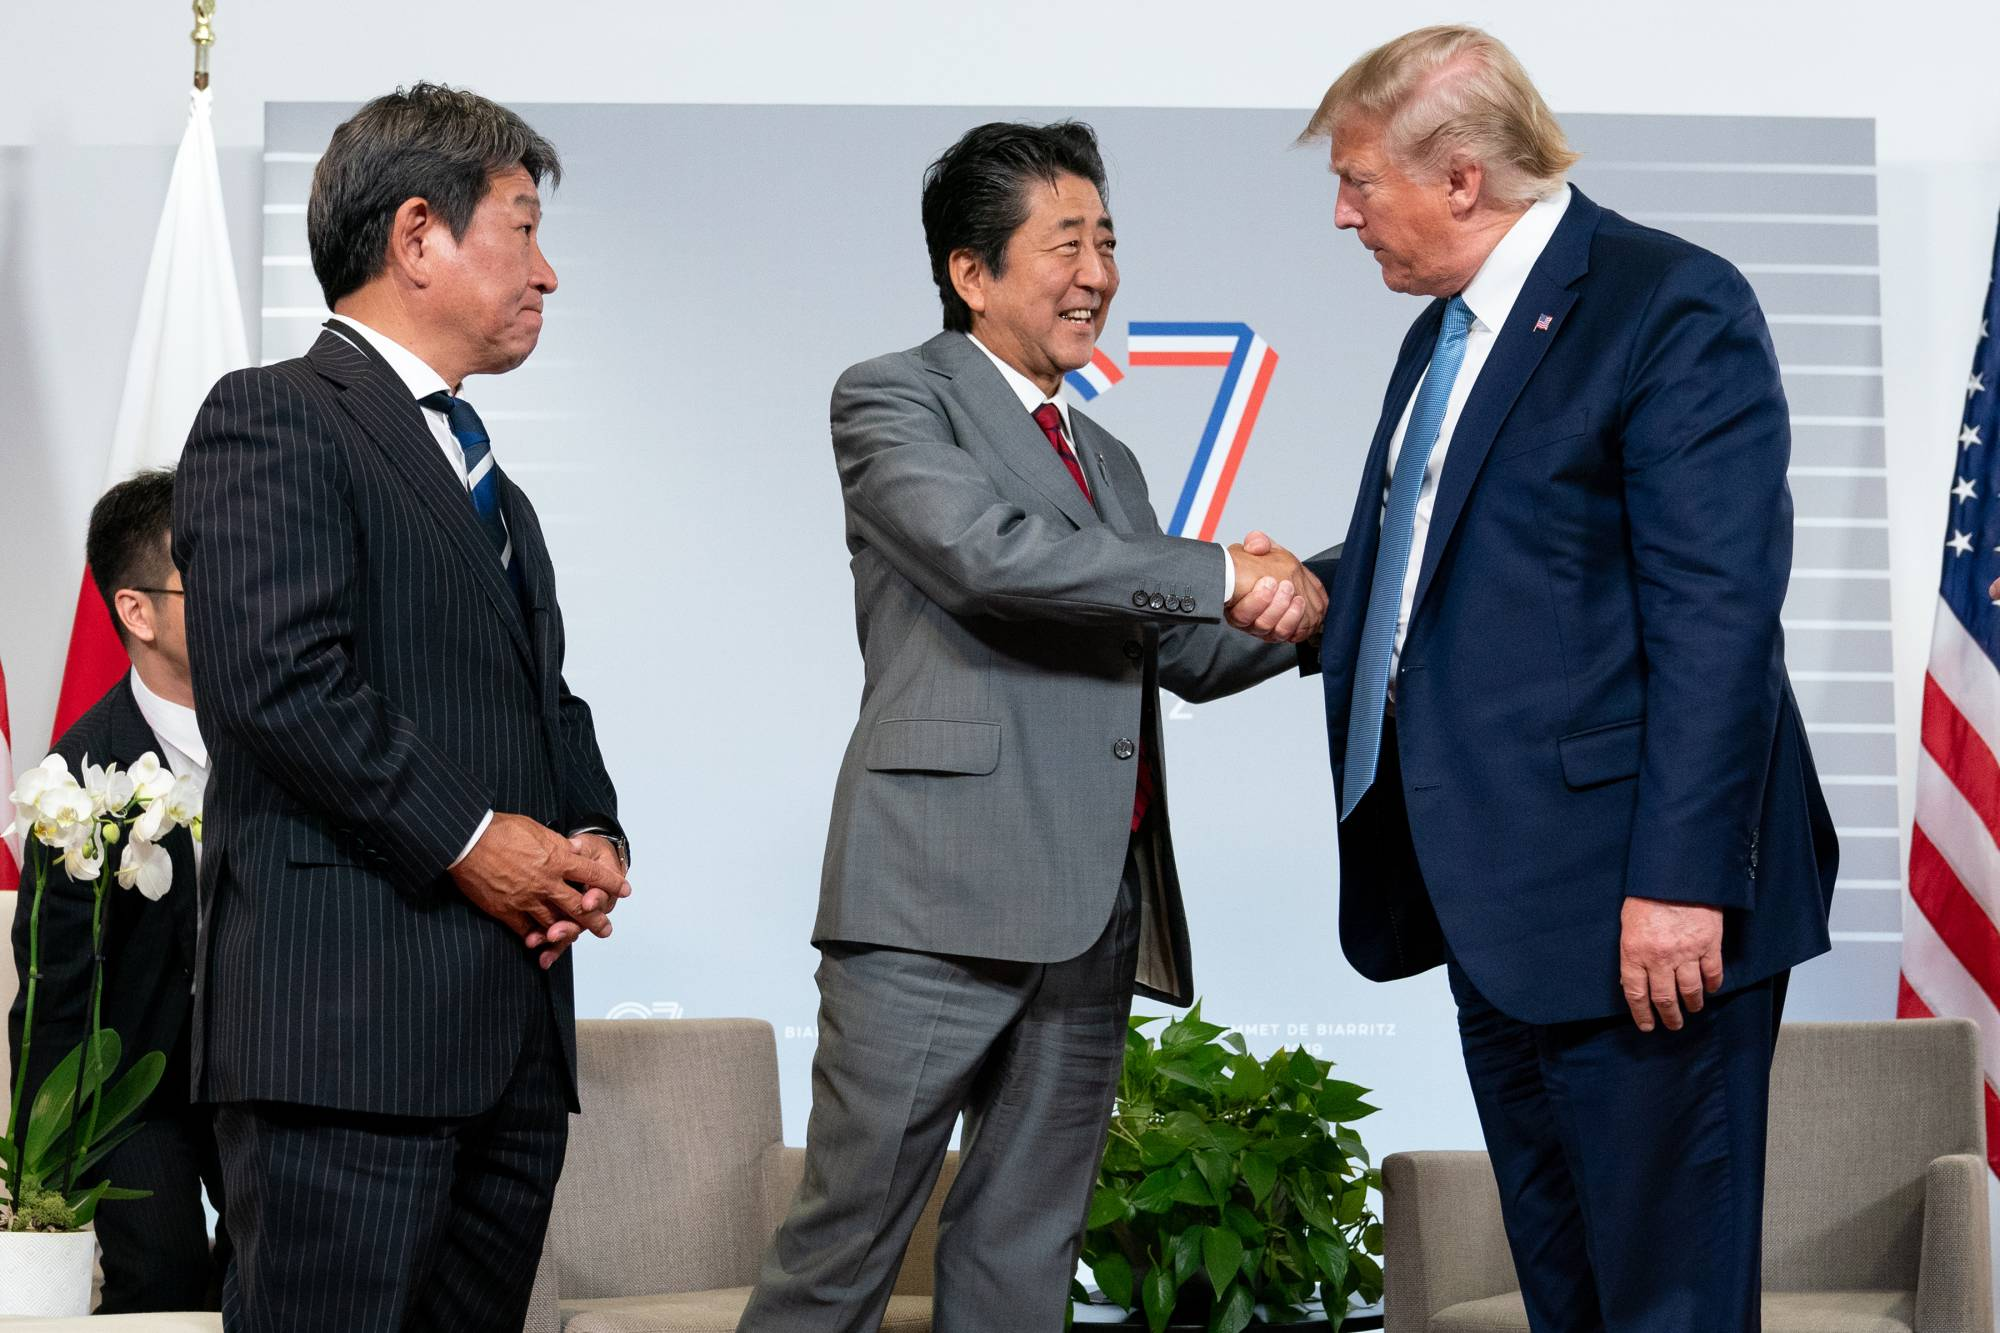 Then-Prime Minister Shinzo Abe meets with U.S. President Donald Trump during the Group of Seven summit in Biarritz, France, in August 2019.      ERIN SCHAFF / THE NEW YORK TIMES